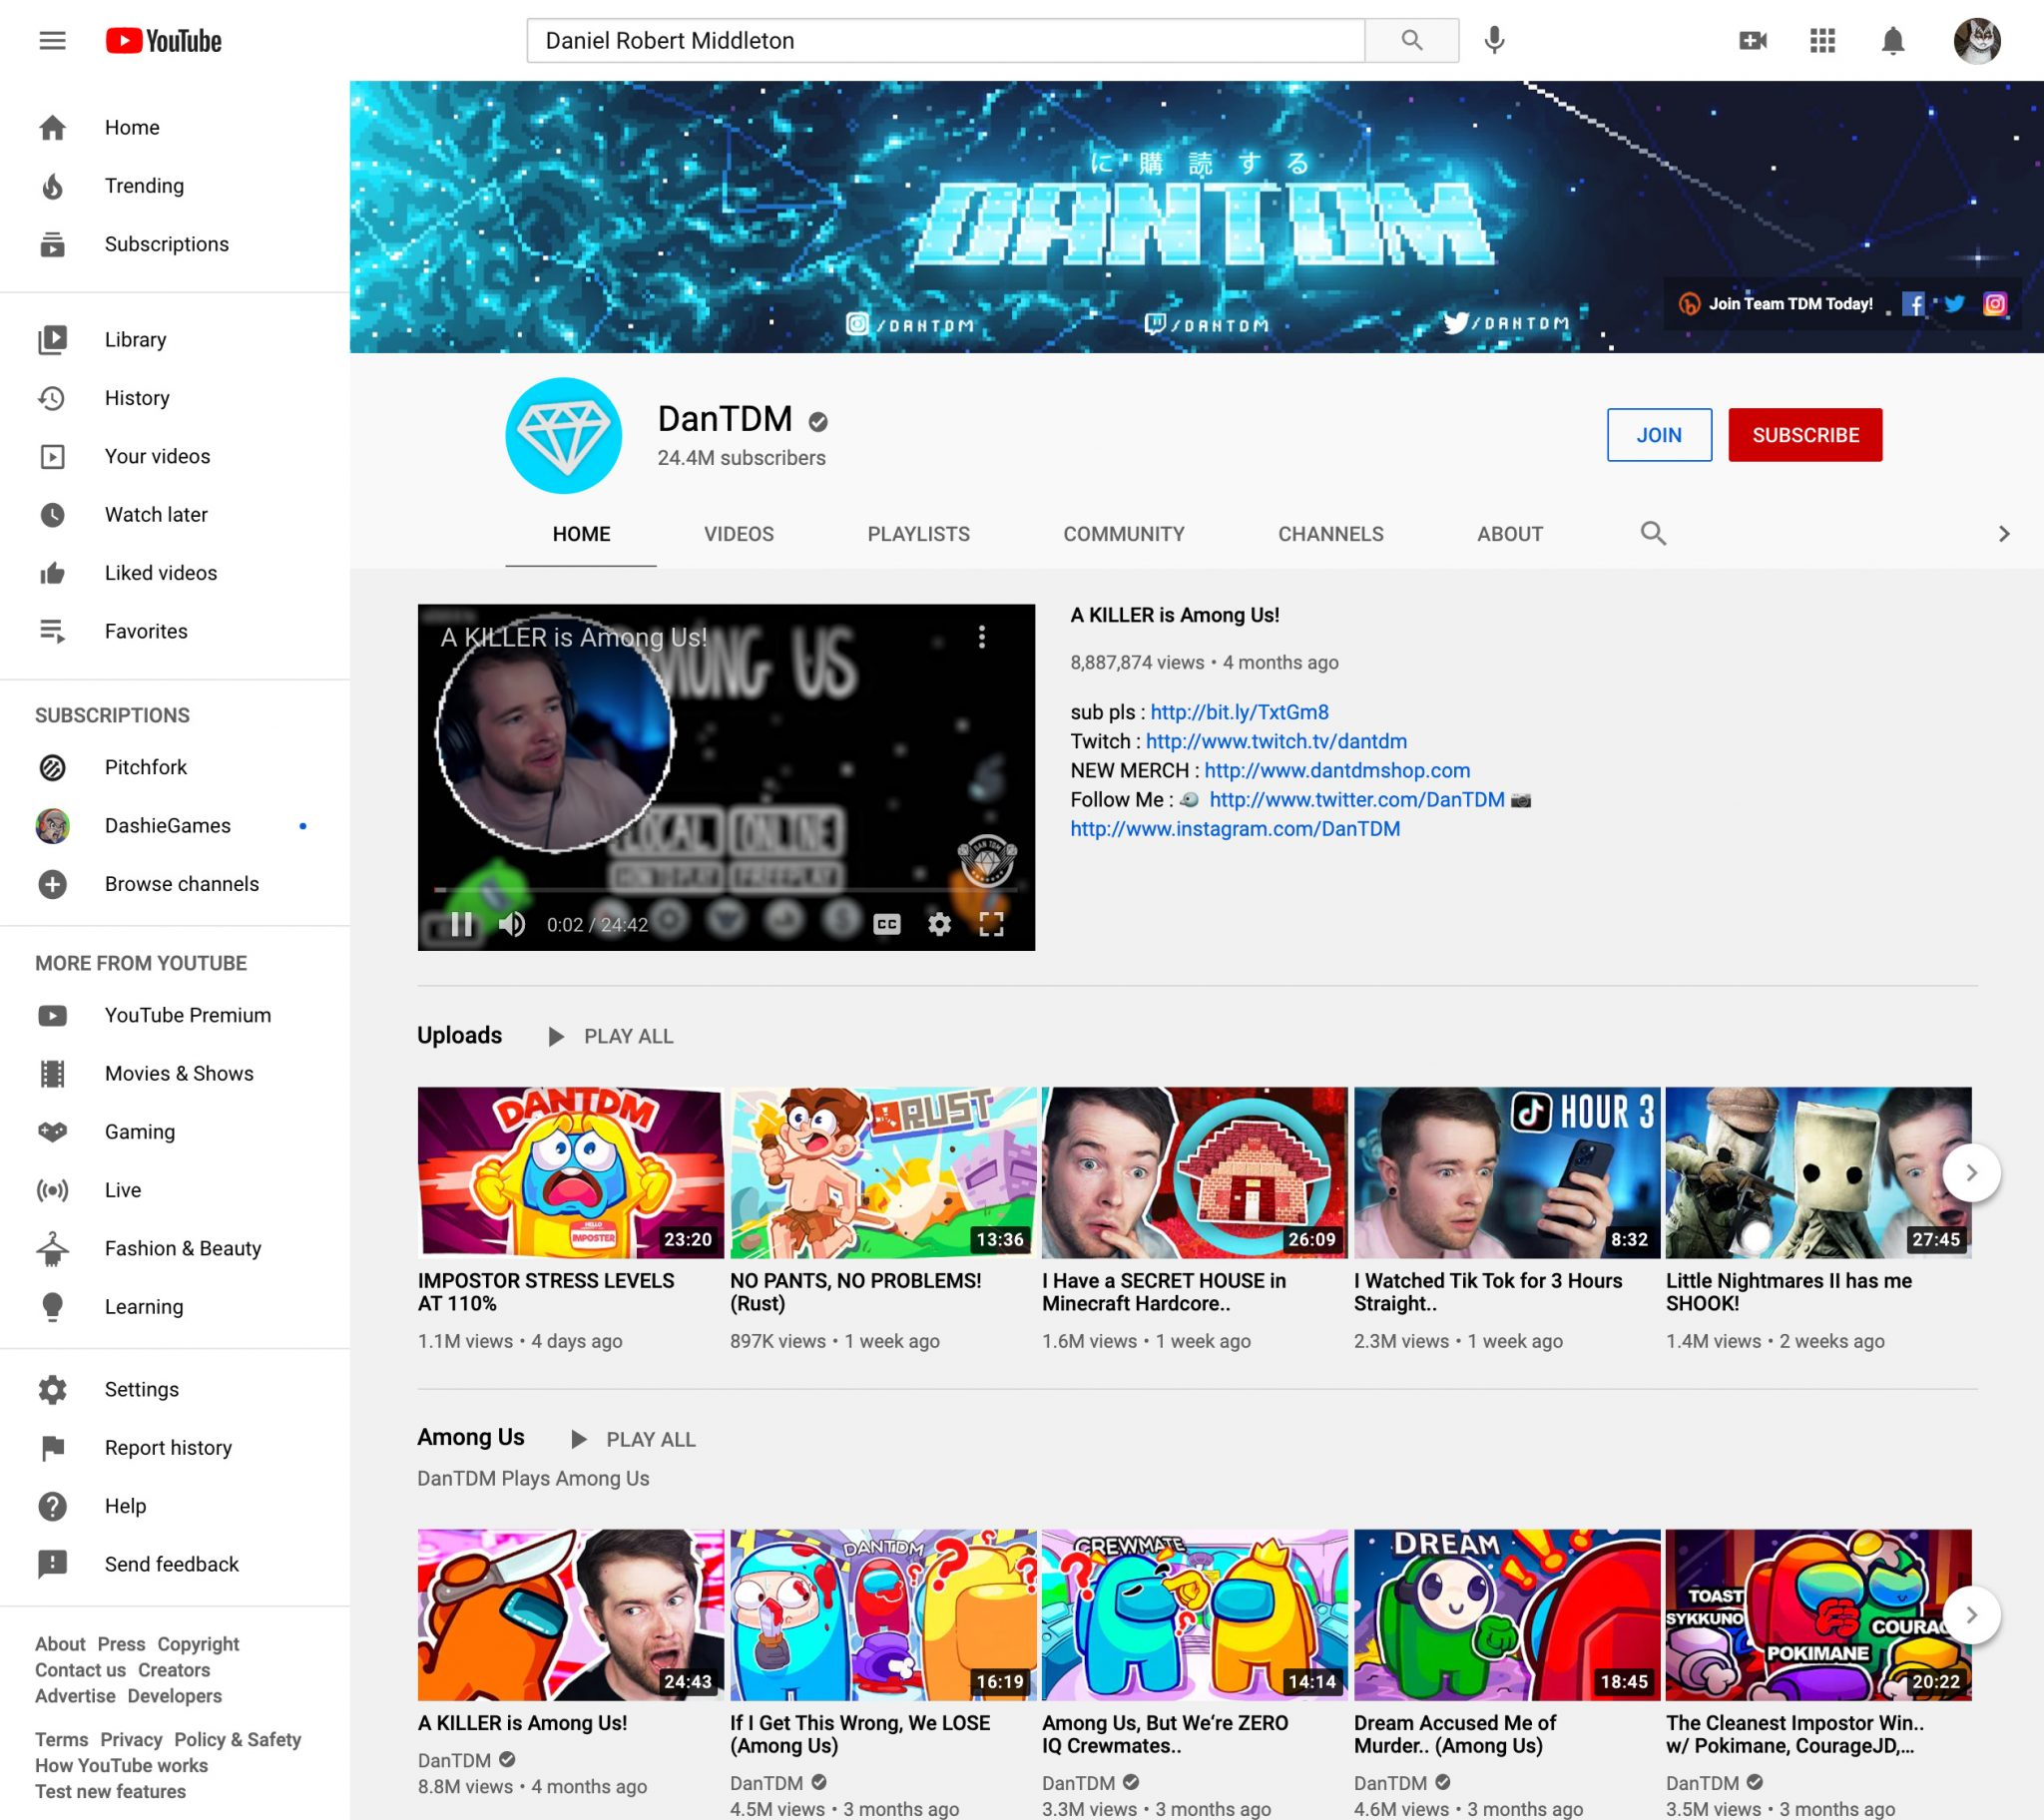 DanTDM youtube influencer page